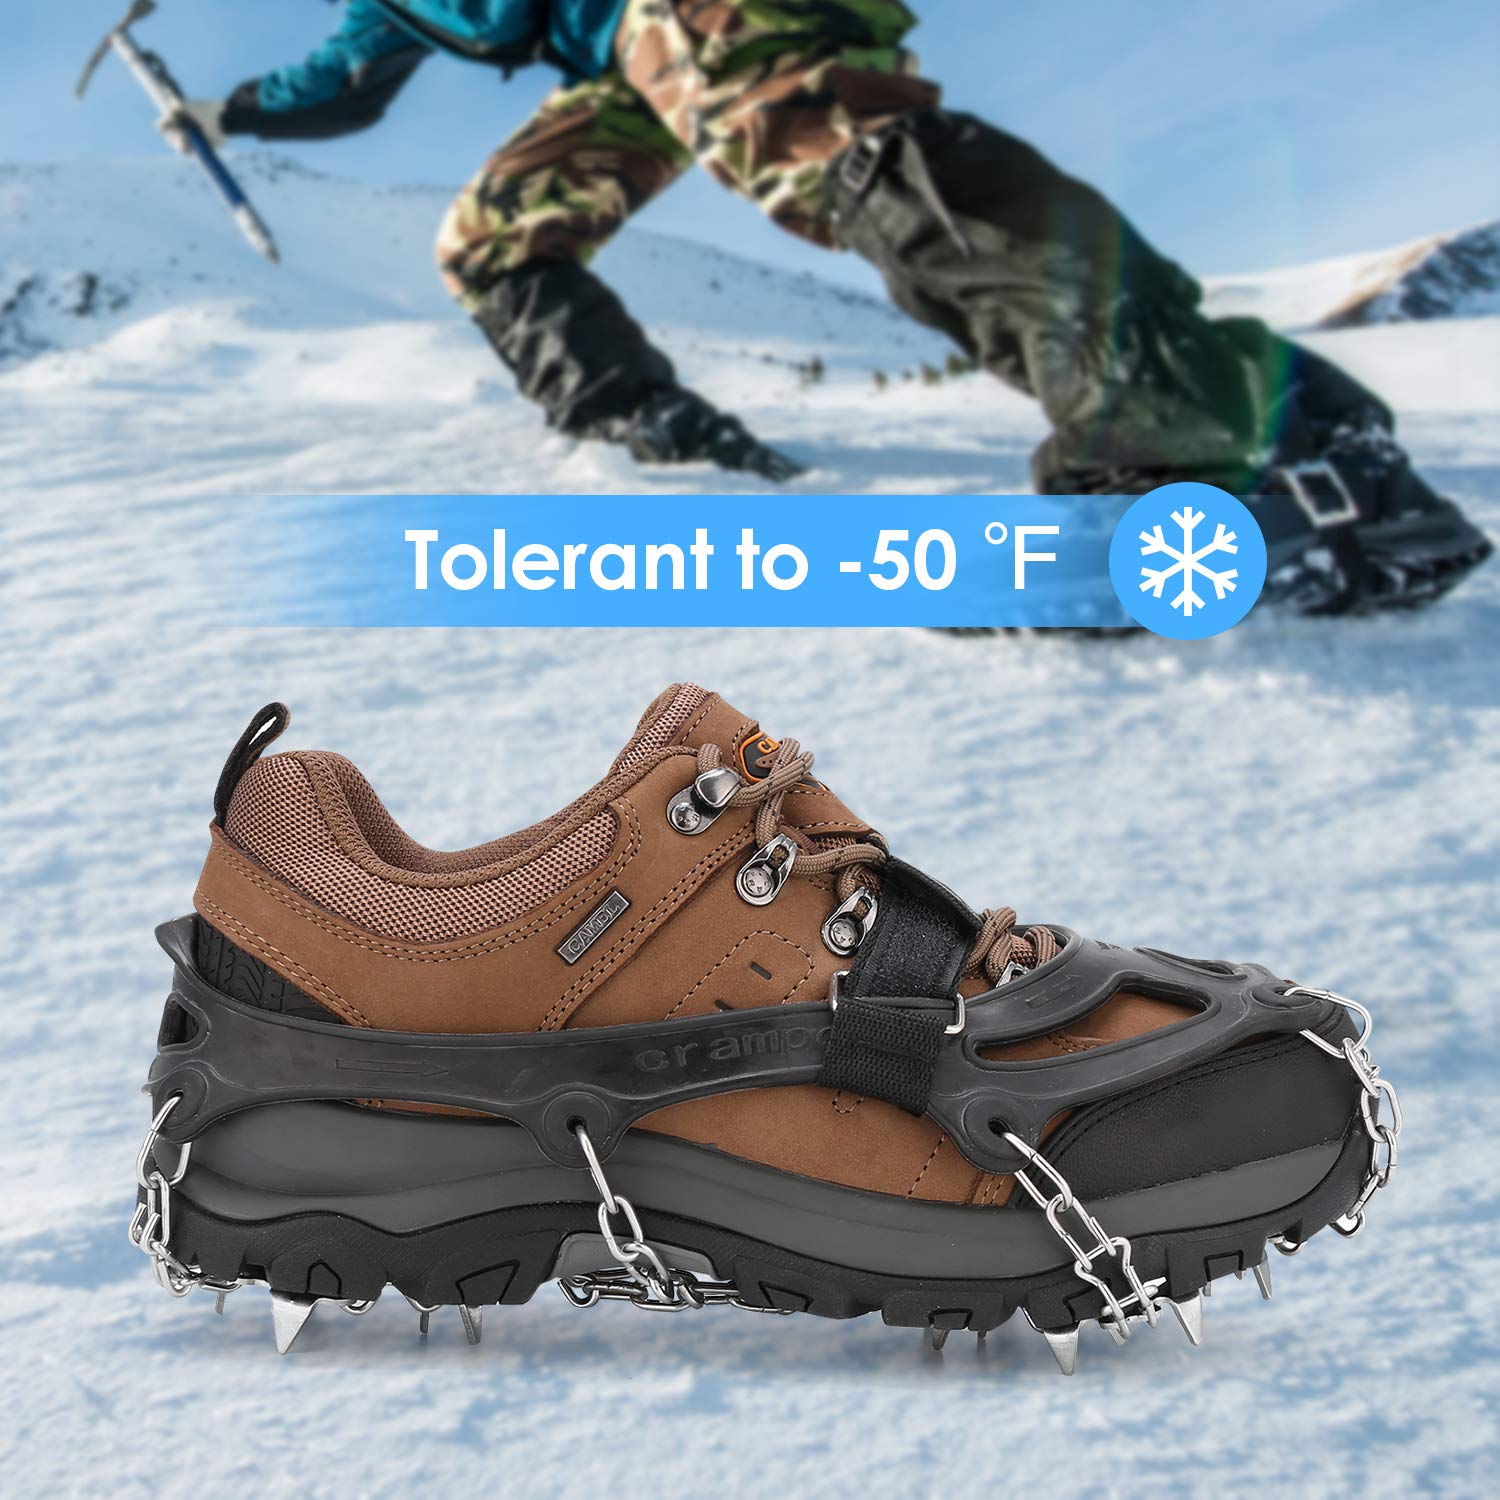 Vensoon Traction Ice Cleats Ice Grips for Shoes 19 Spikes Crampons for Boots Running Shoes Walking On Ice Snow Easy Slip On Stainless Steel Chain